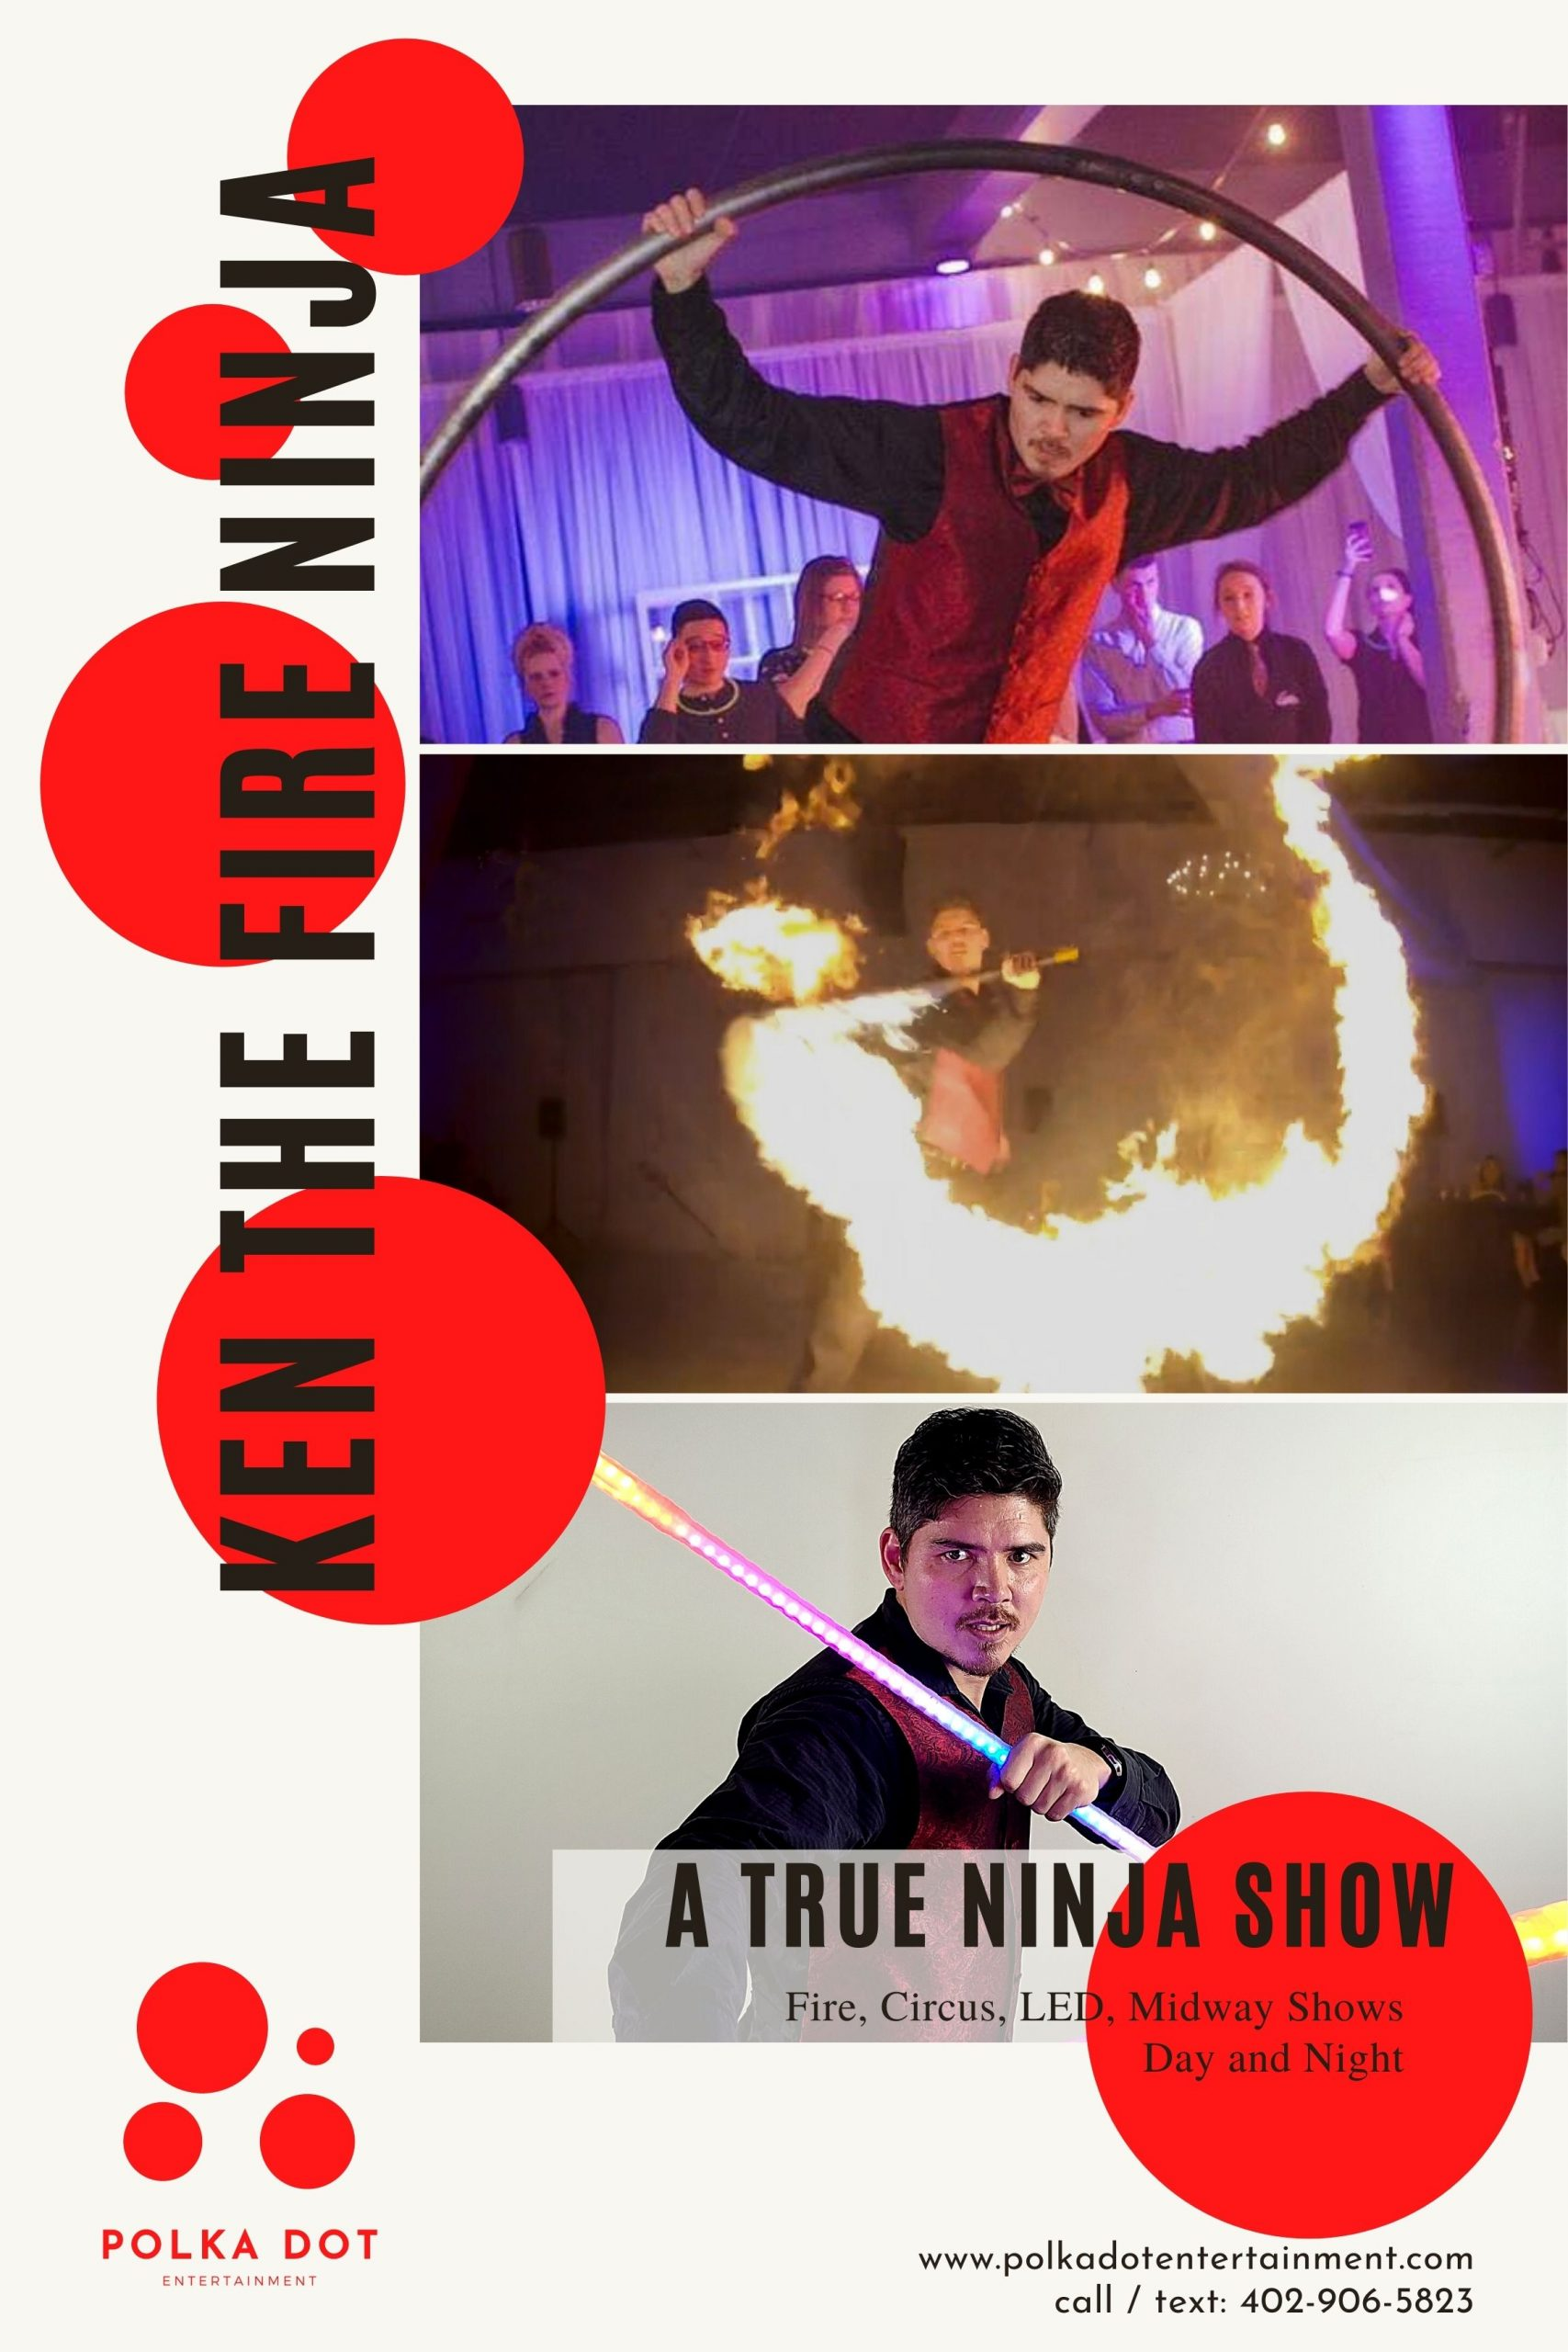 Ken the Fire Ninja combines circus, martial arts, fire and LED